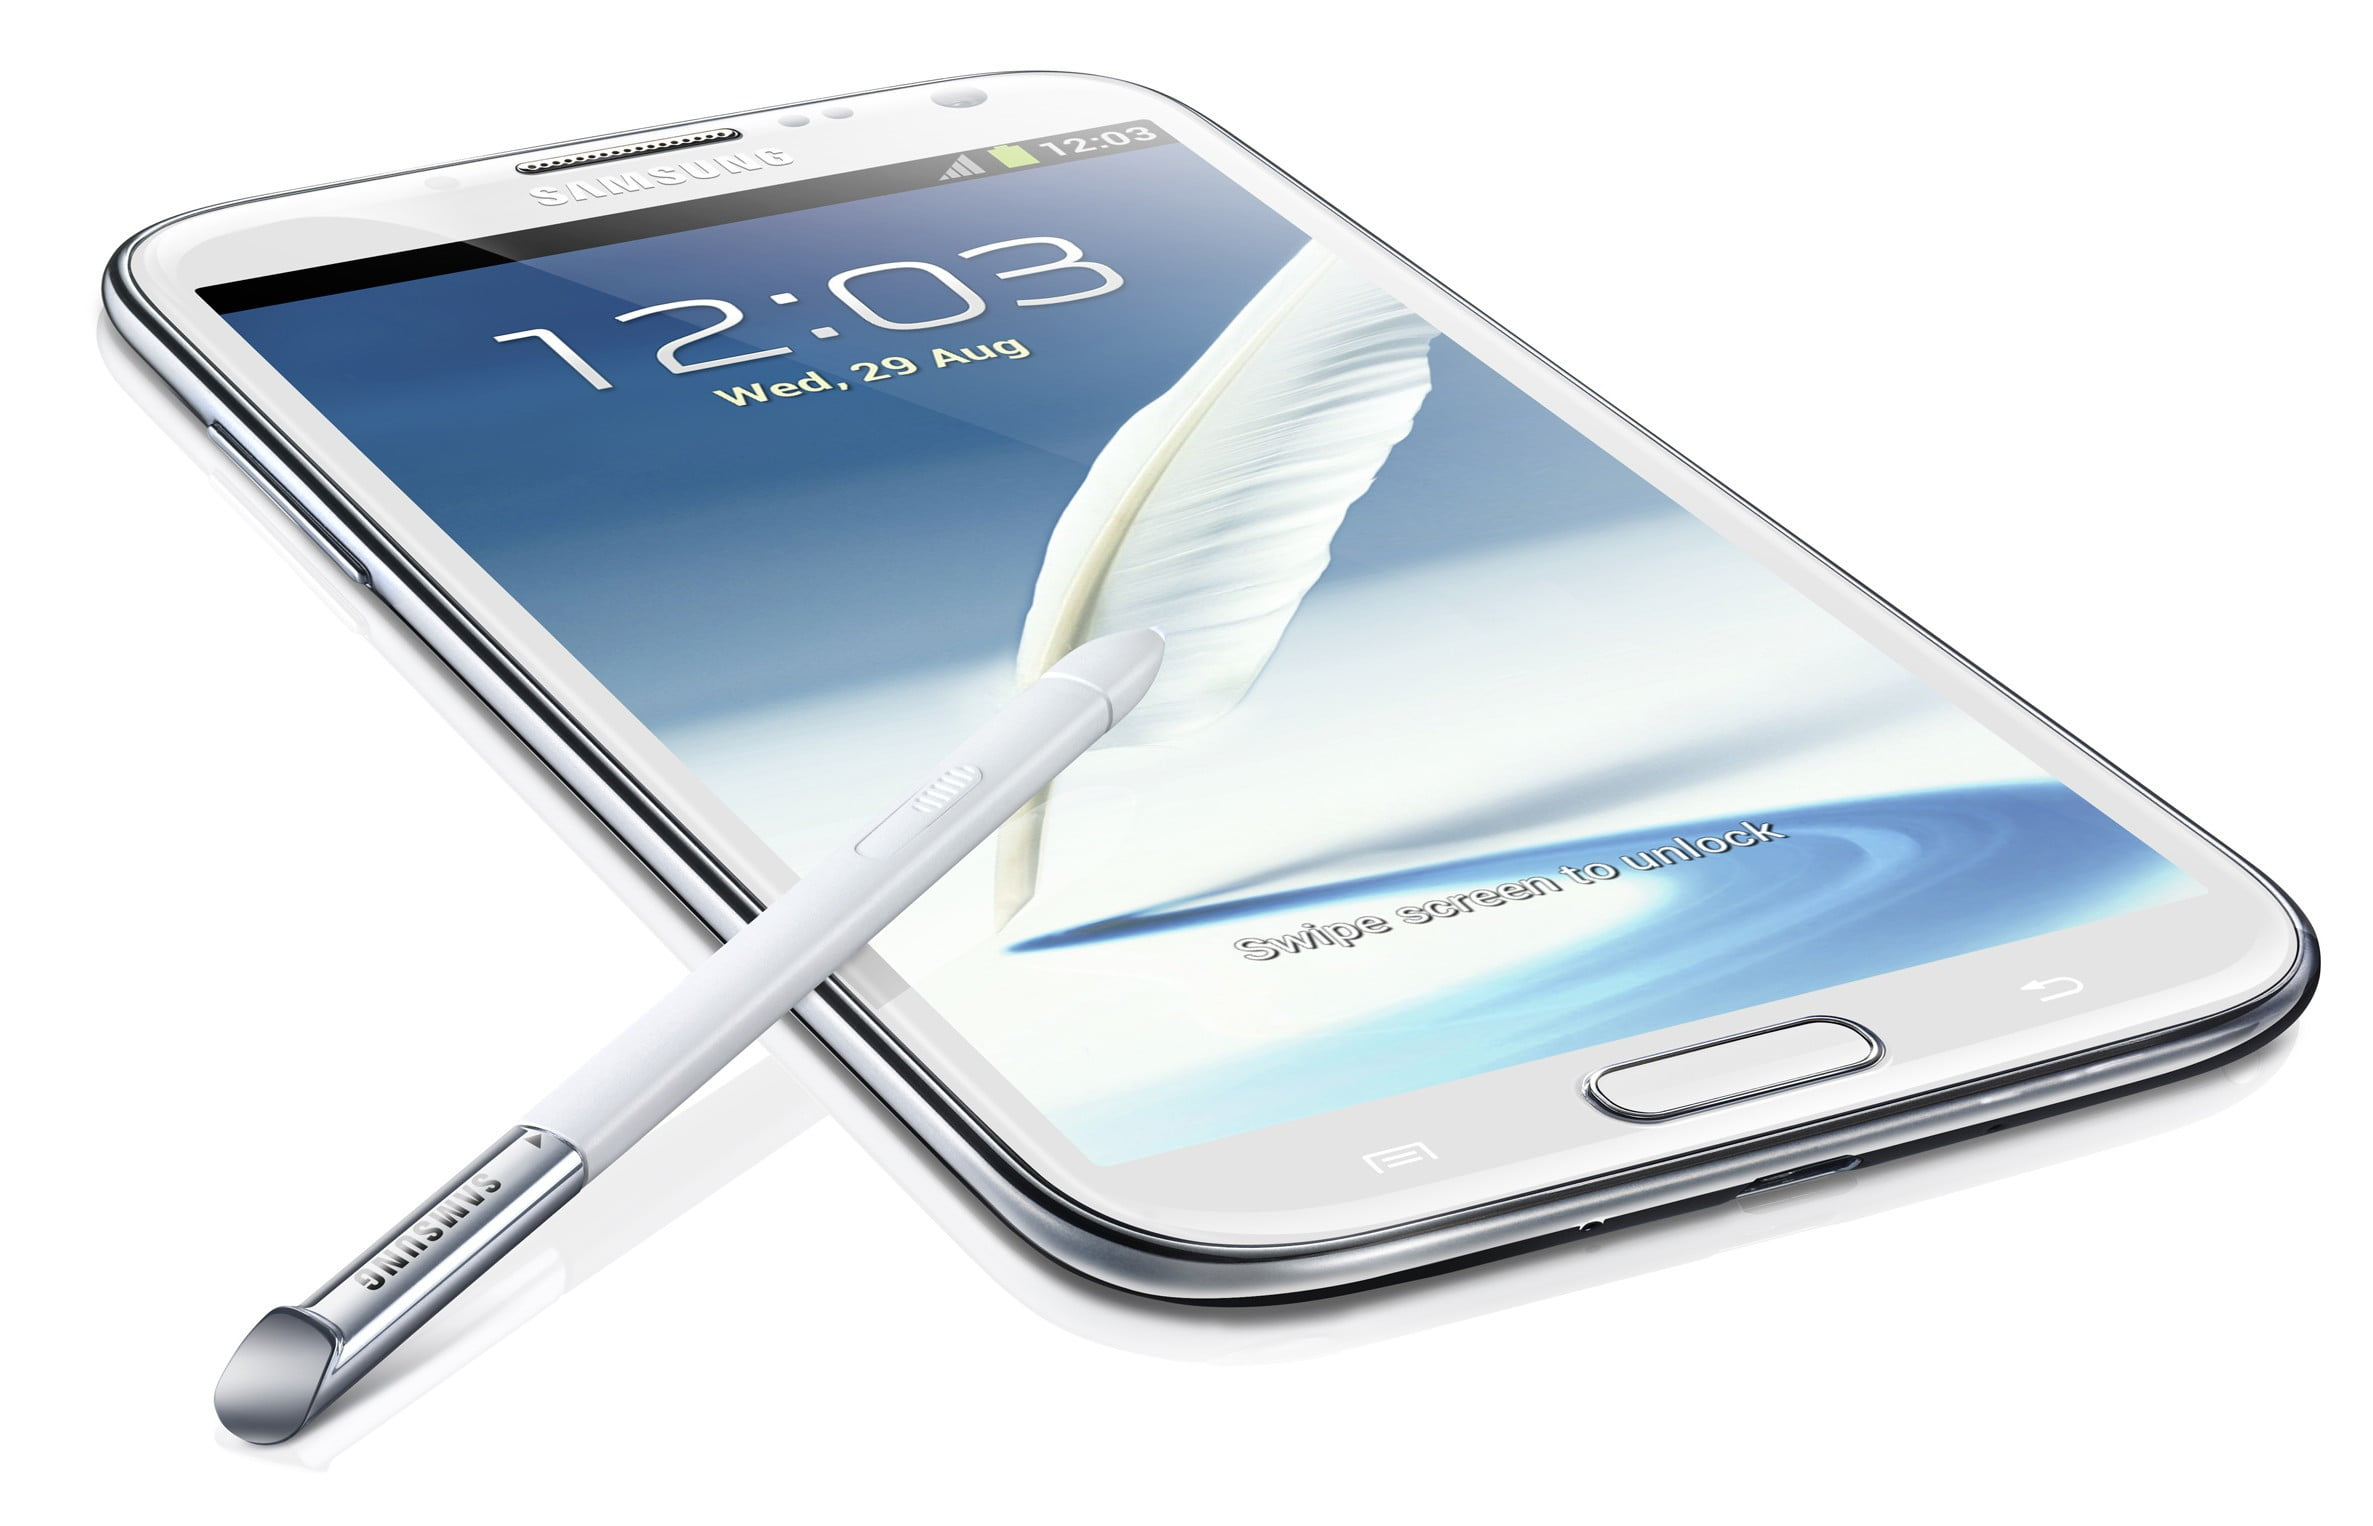 Galaxy Note 2: Common Problems and How to Fix Them | Digital